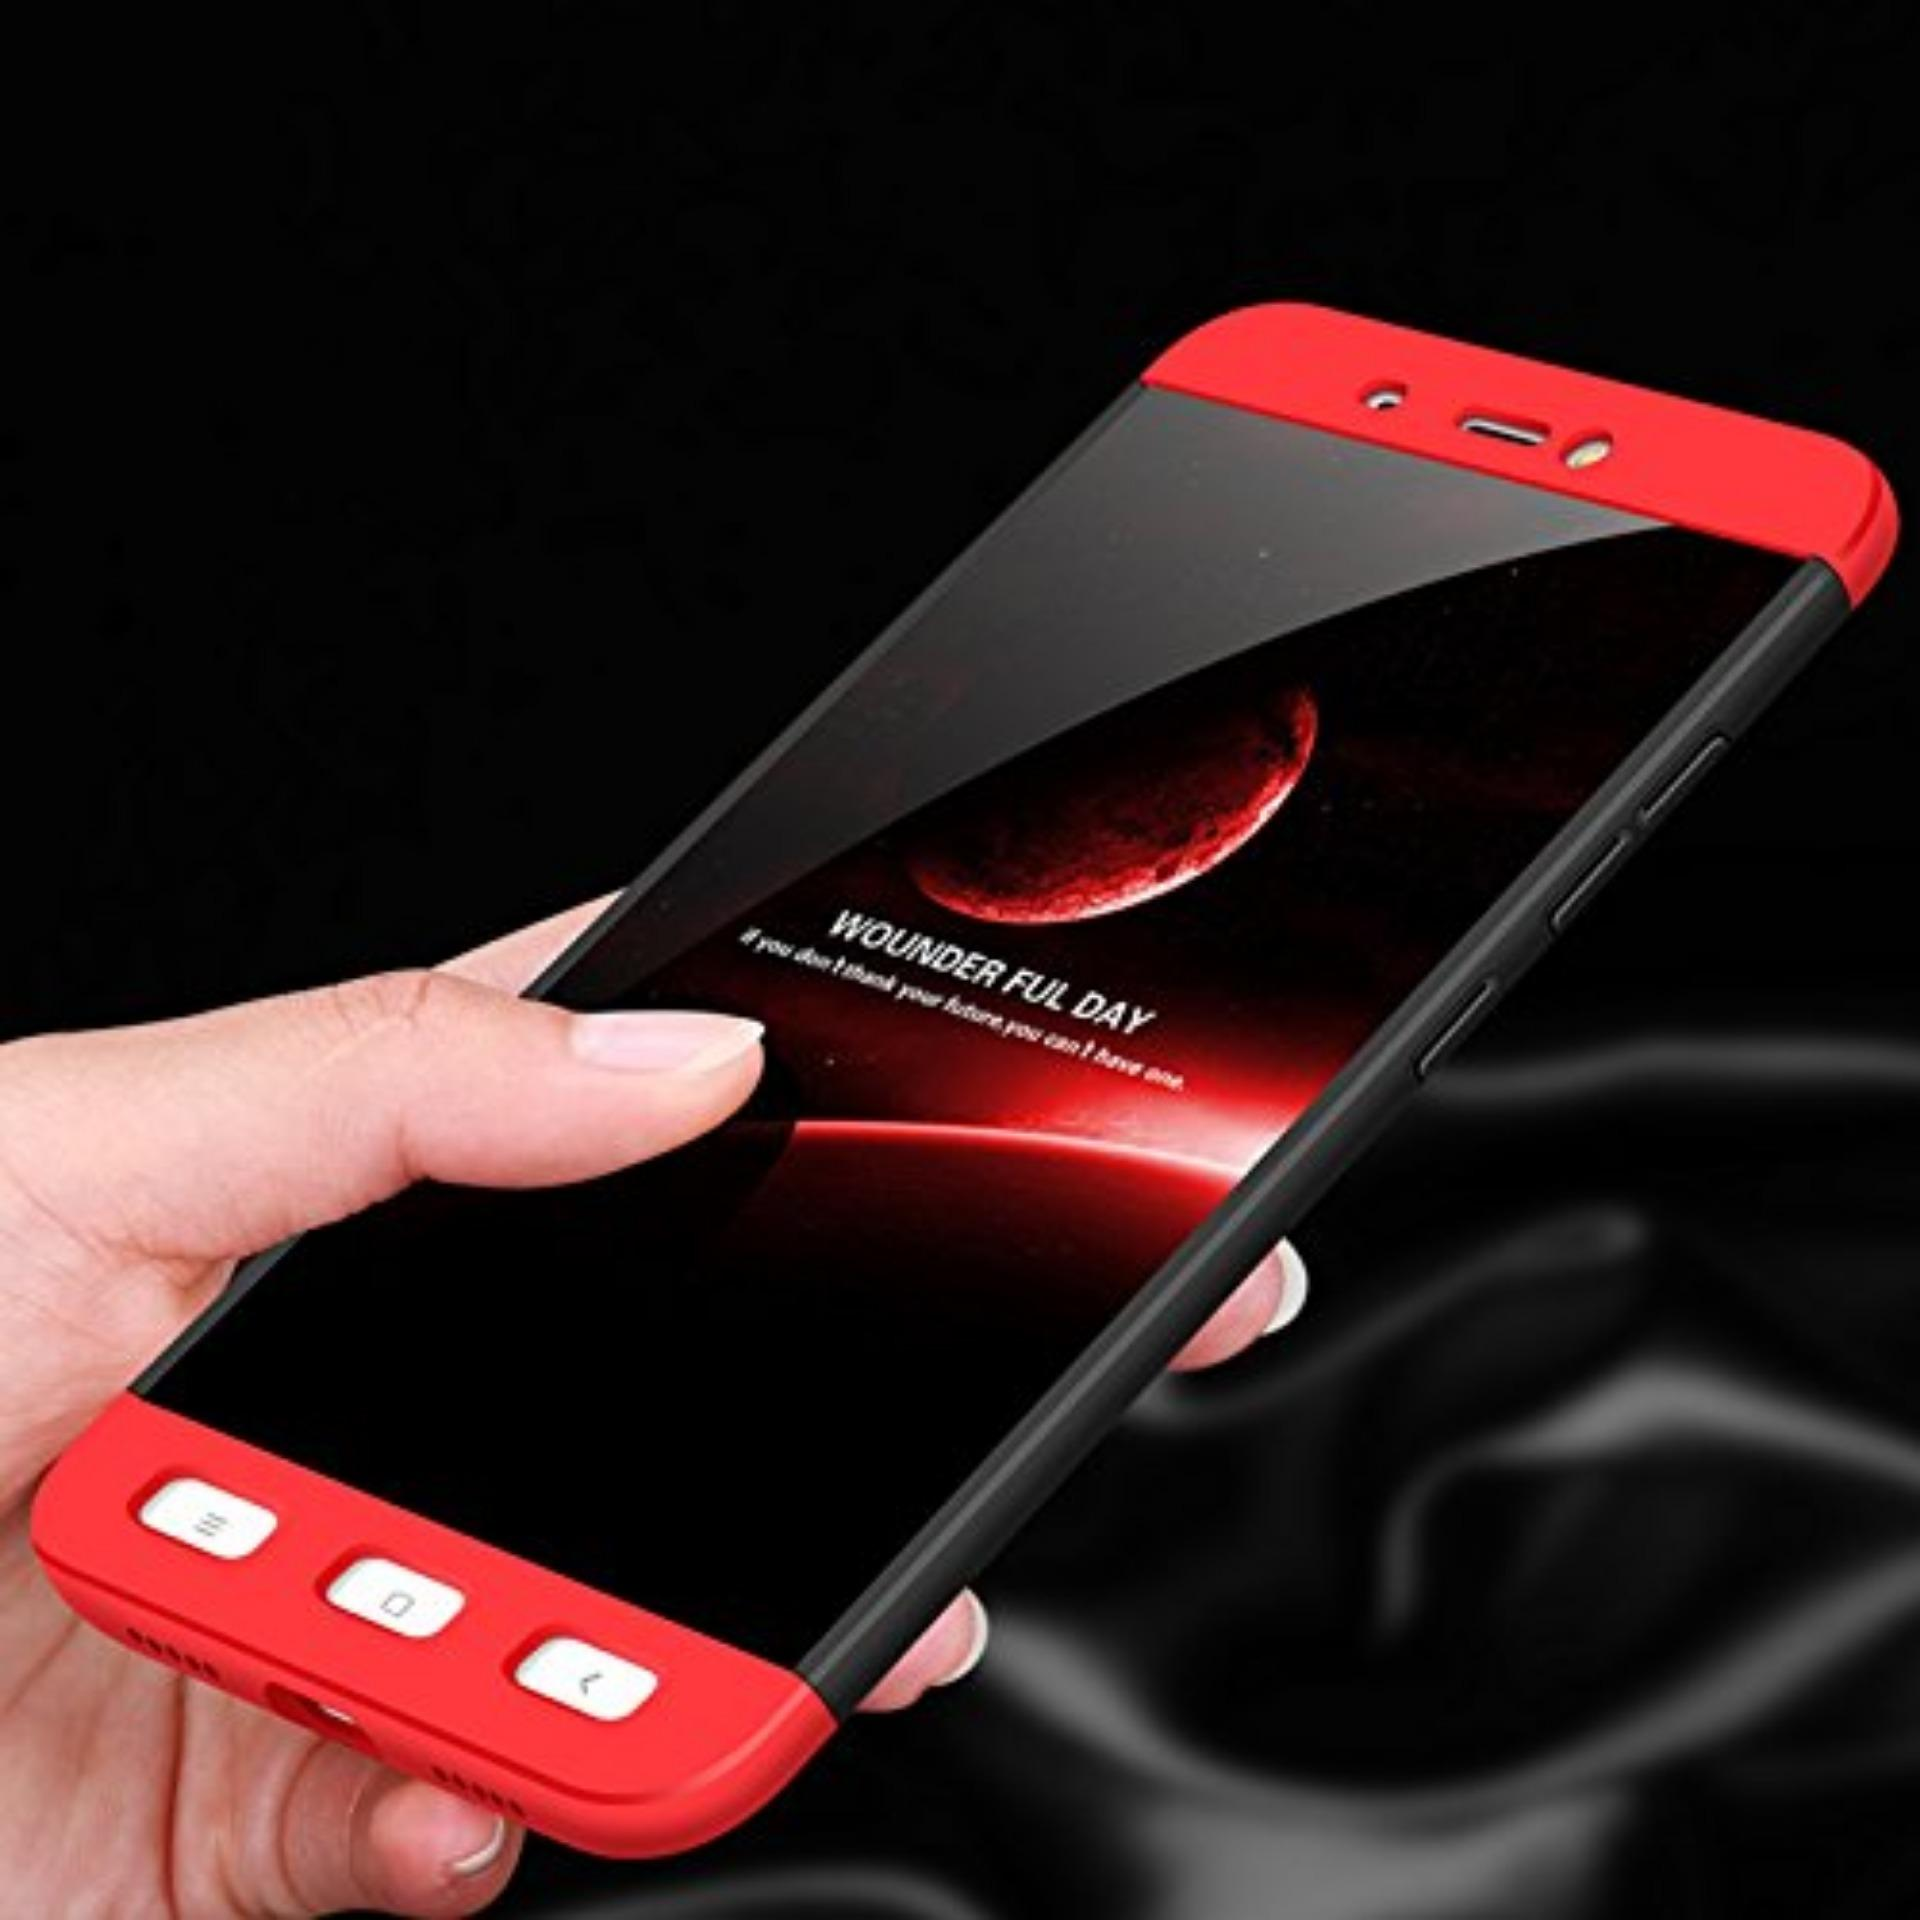 Buy Sell Cheapest Back Cover Premium Best Quality Product Deals Motomo Xiaomi Mi 4i Case Hardcase Color 360 Degree Full Protection Super Slim Anti Slip Hard For